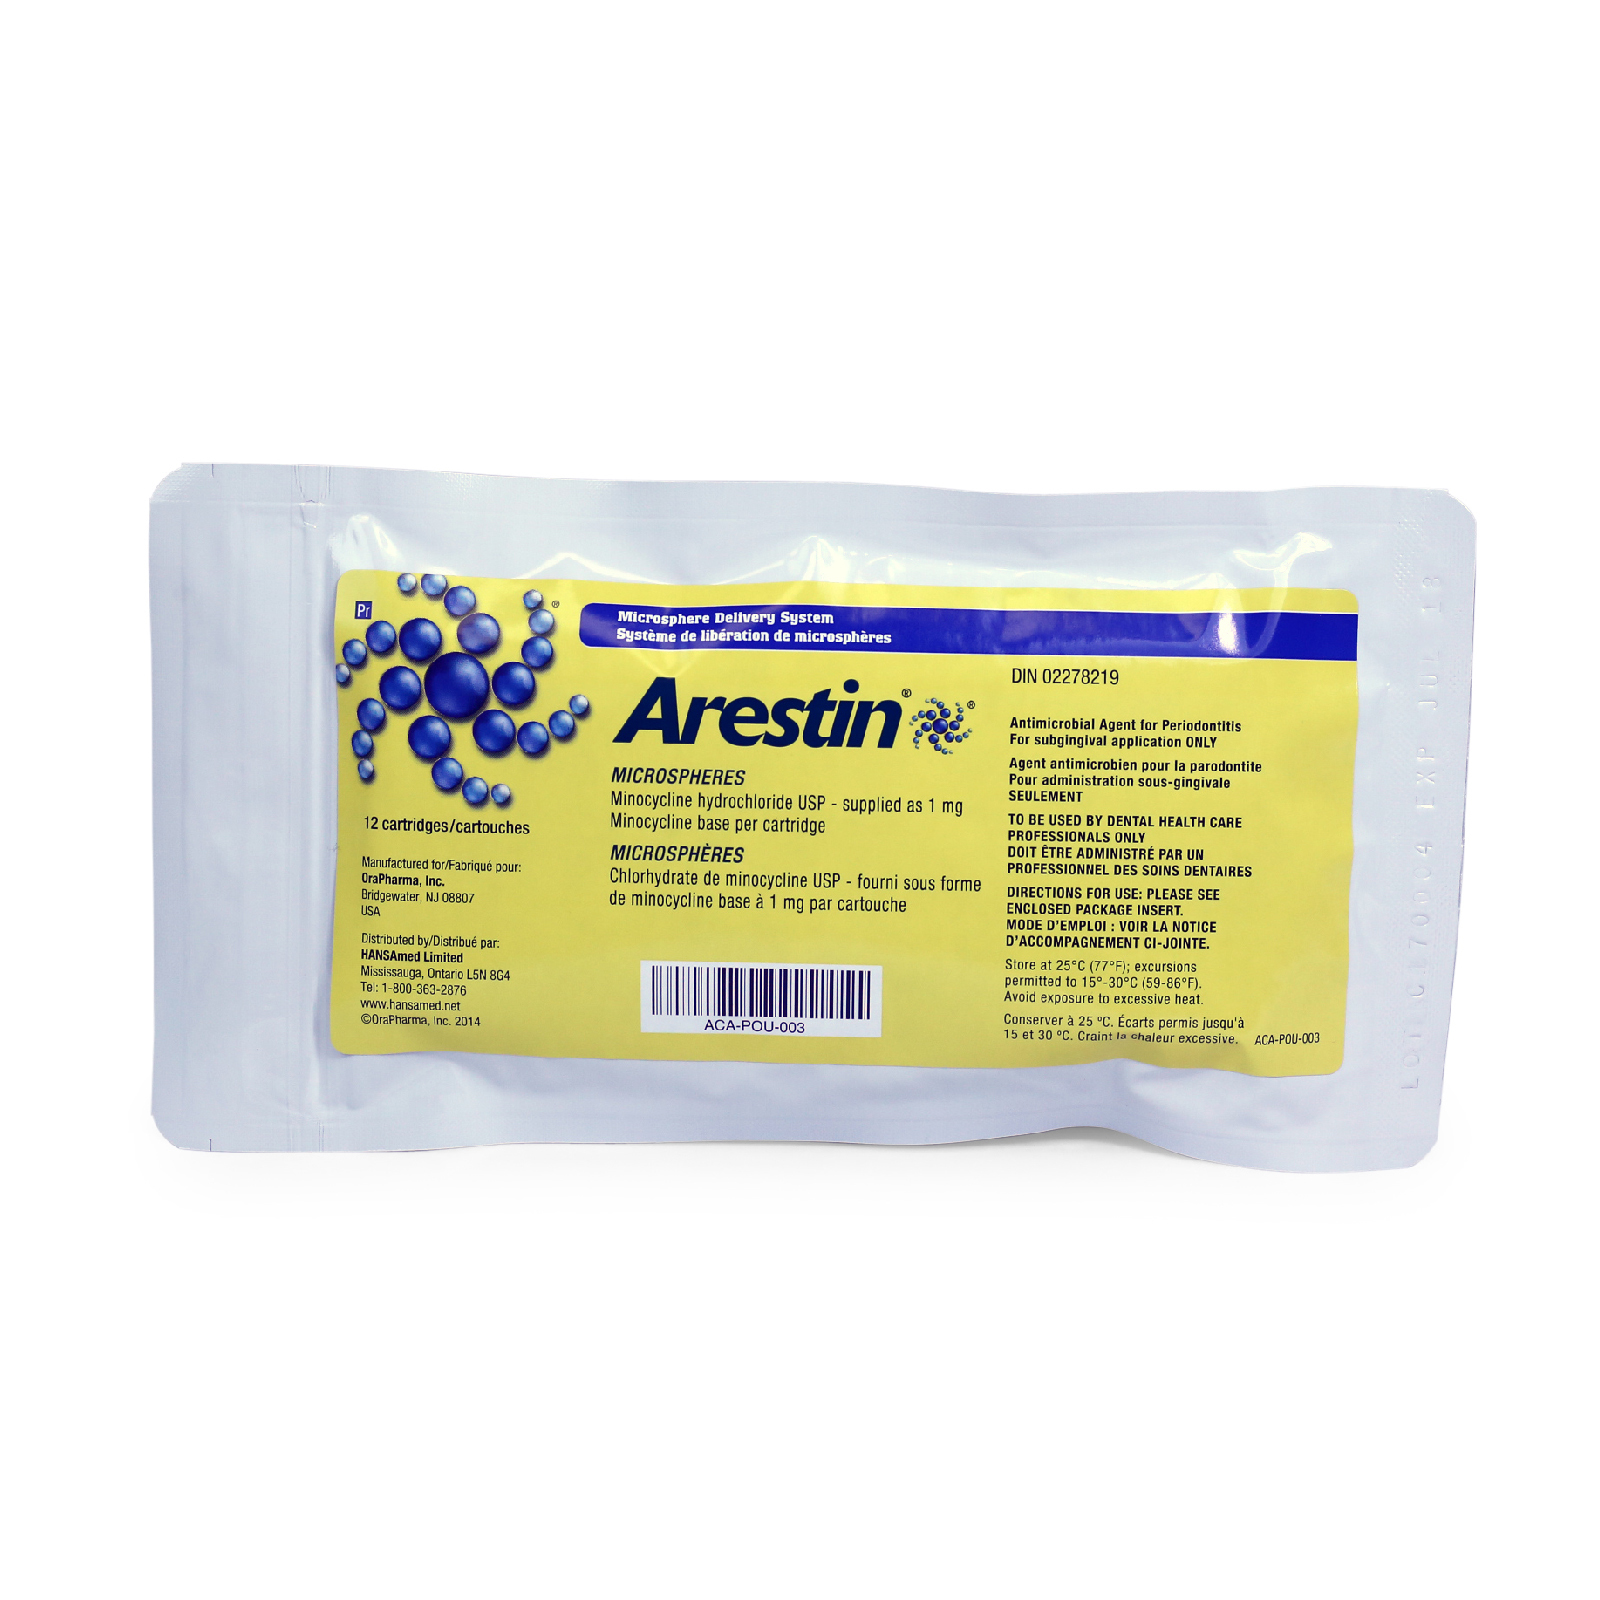 Picture of Arestin® (minocycline HCl) Microspheres, 1mg, 12 Carp/Bx